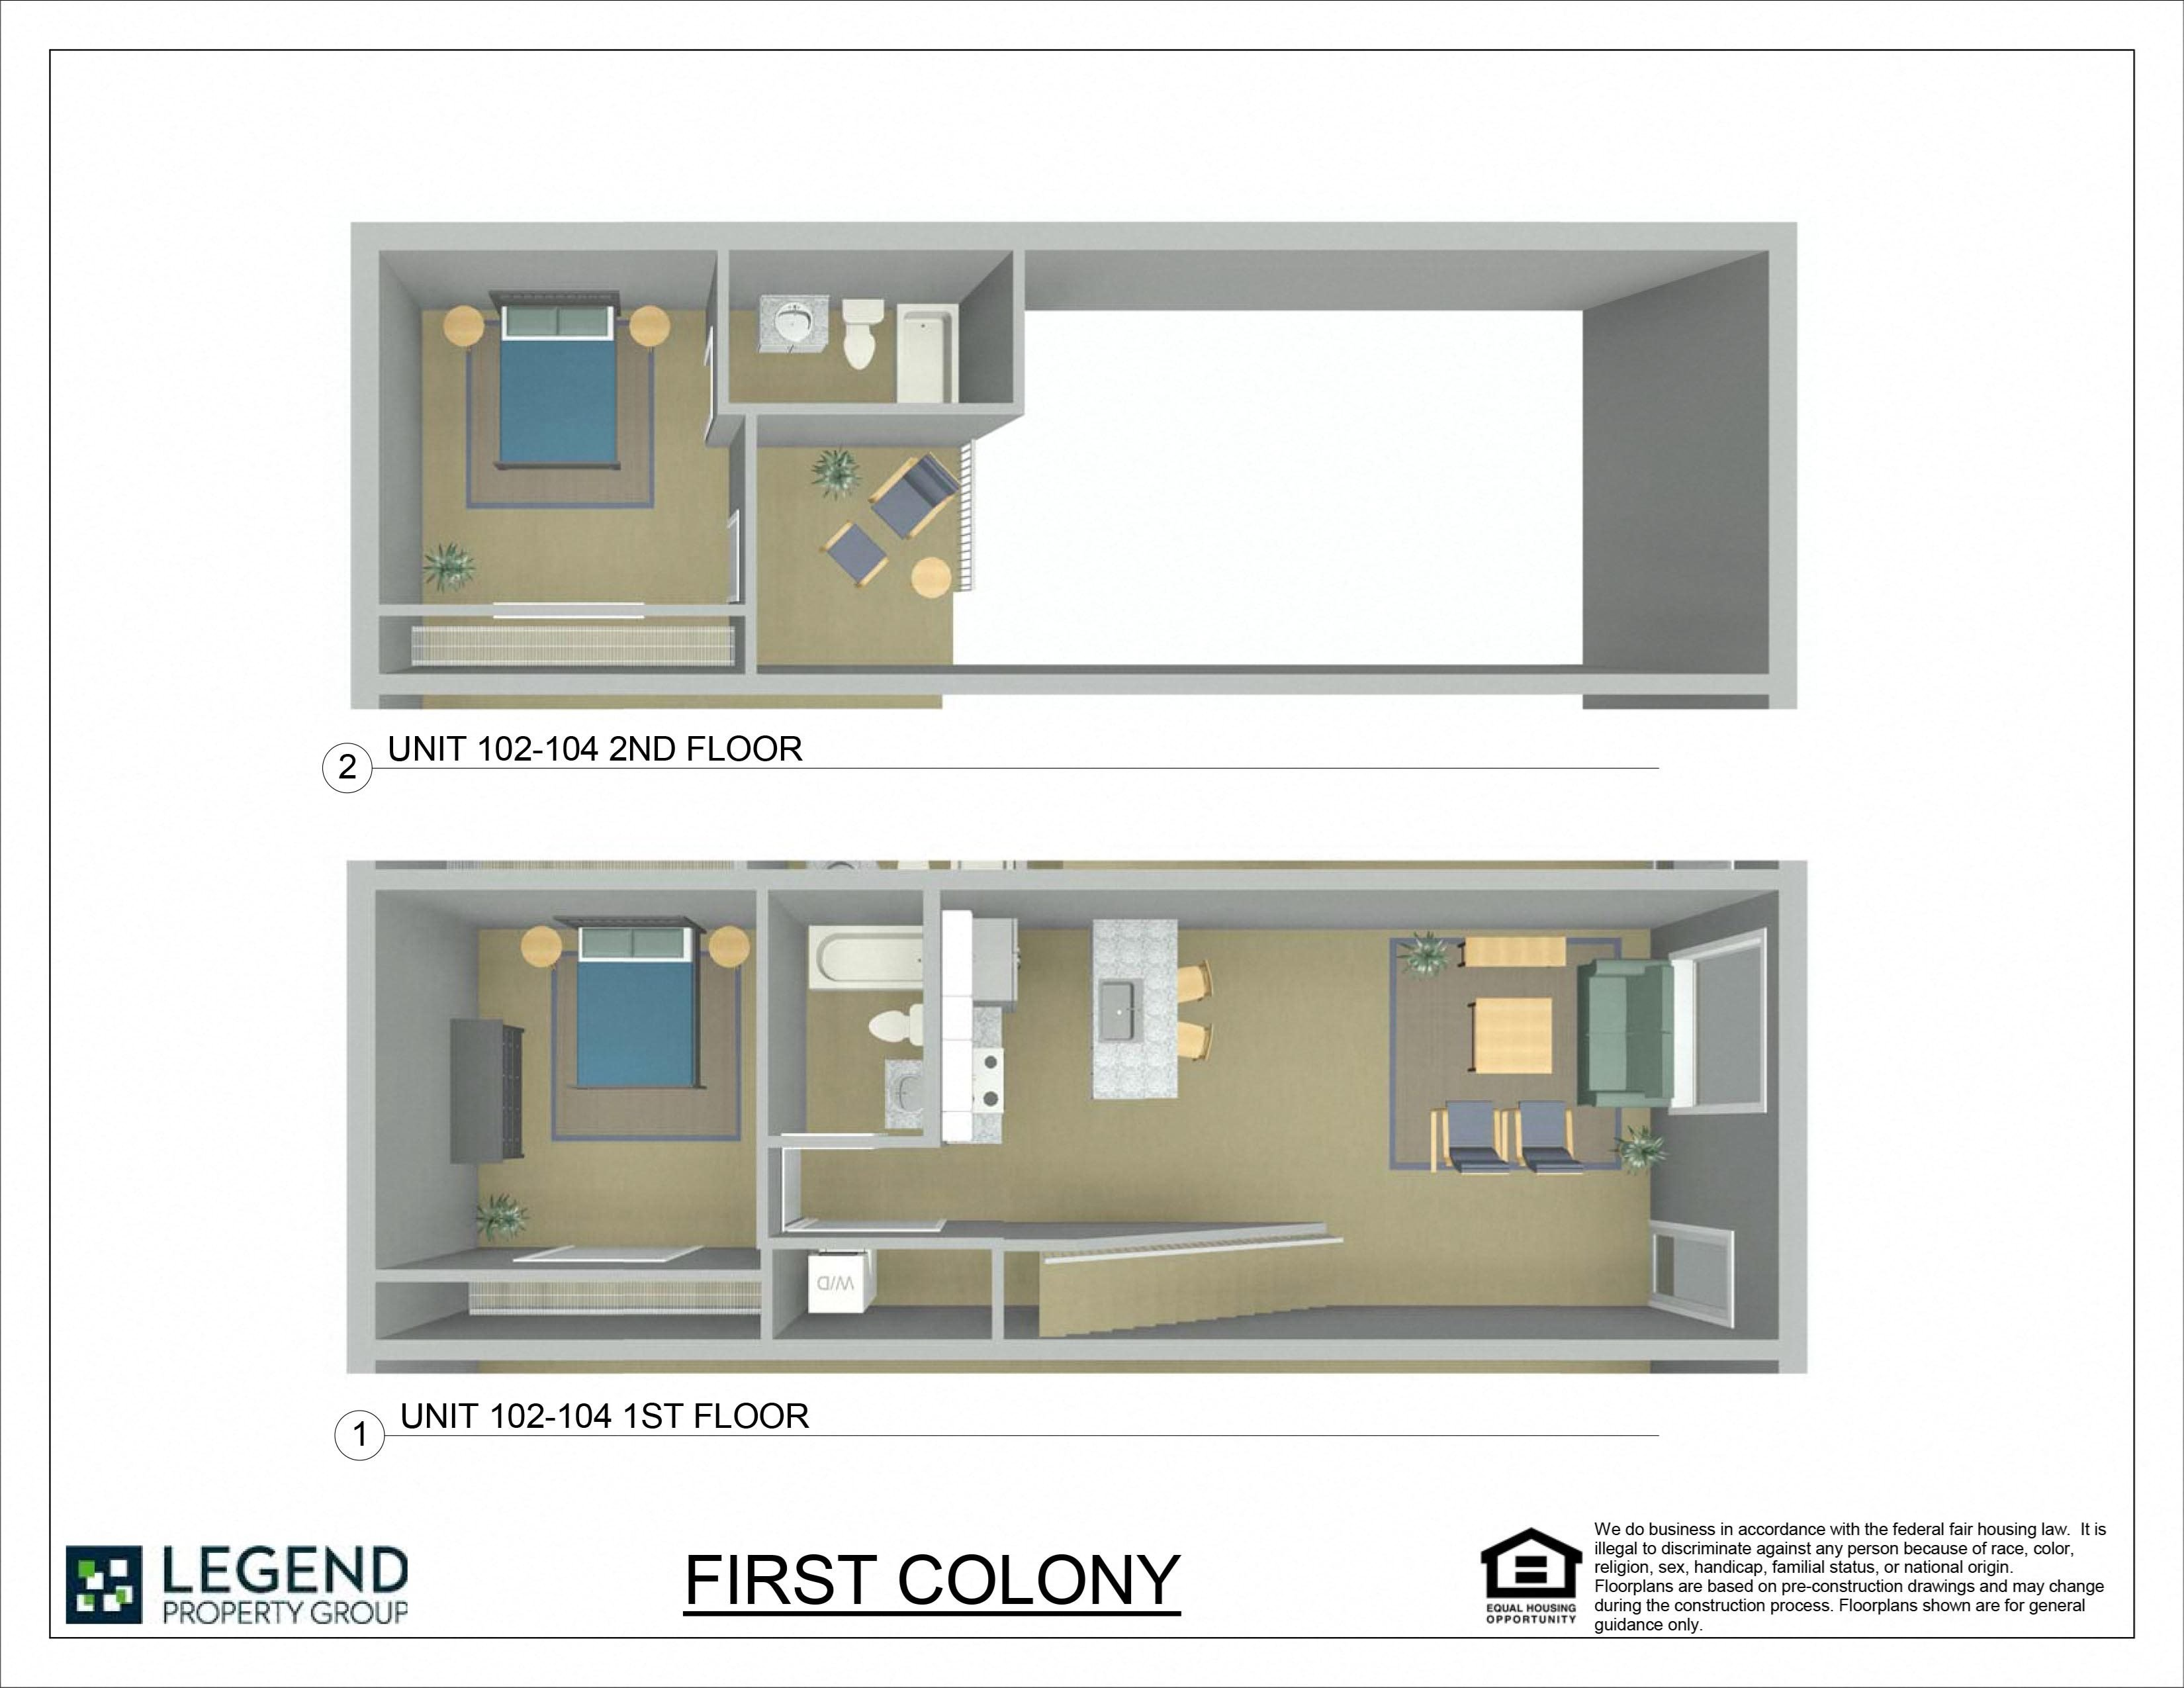 Floor Plans Of First Colony Flats Luxury Apartments In Norfolk Va